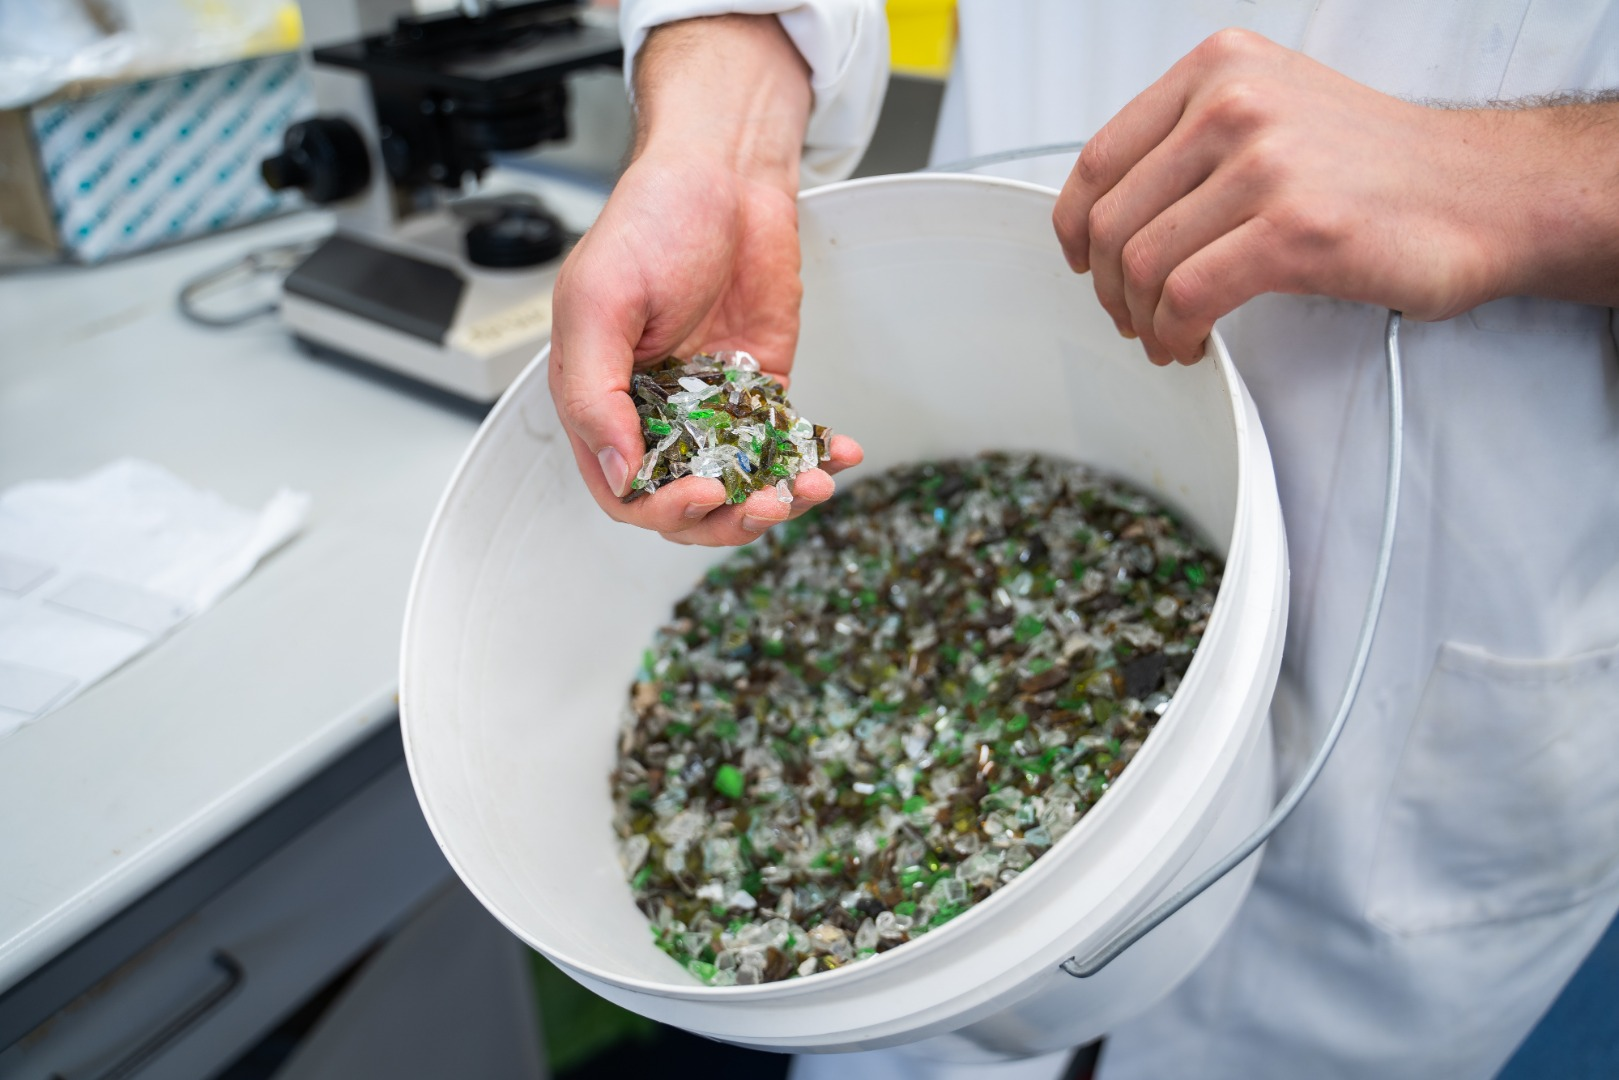 New process converts unrecyclable glass into saleable product